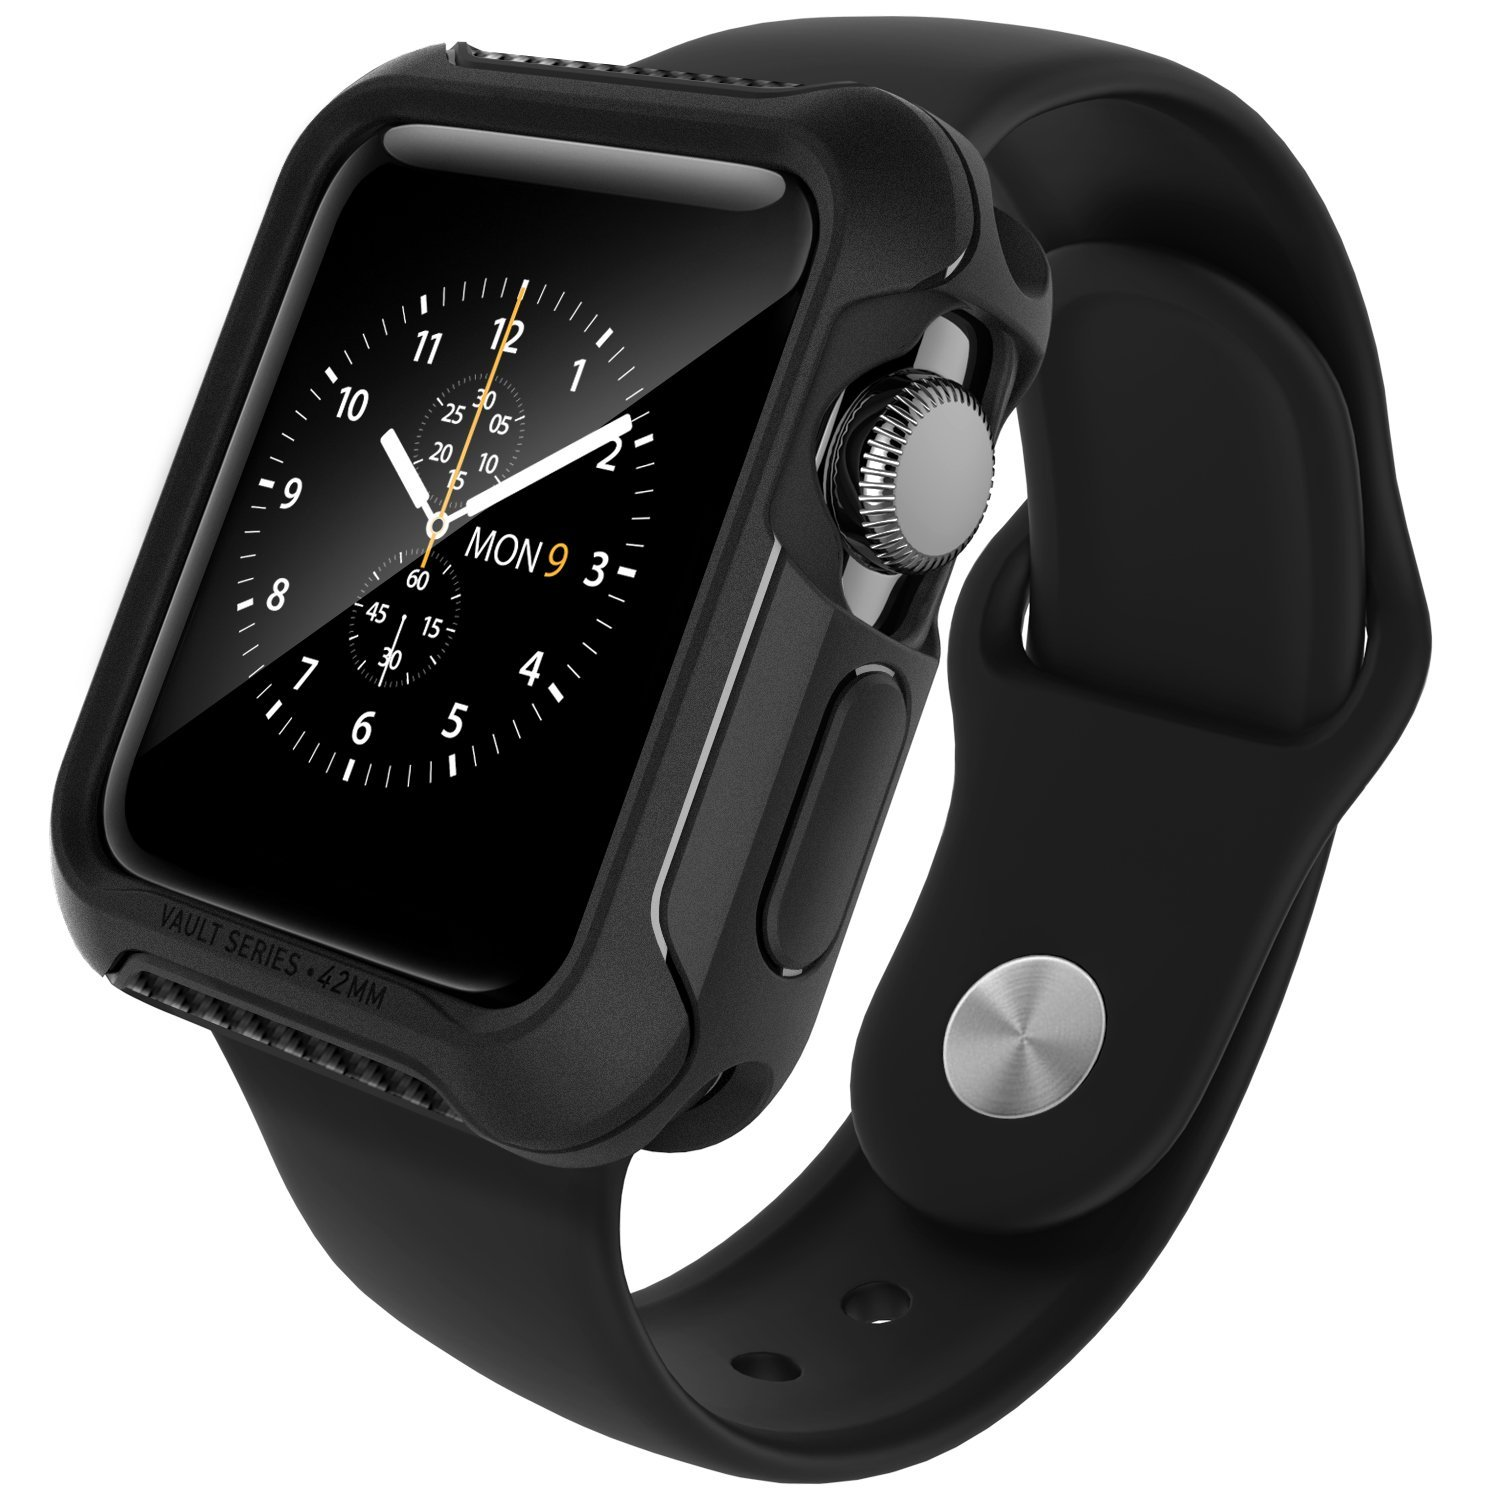 Caseology Apple Watch 42mm Version 2 Case Vault Series - Black ORI